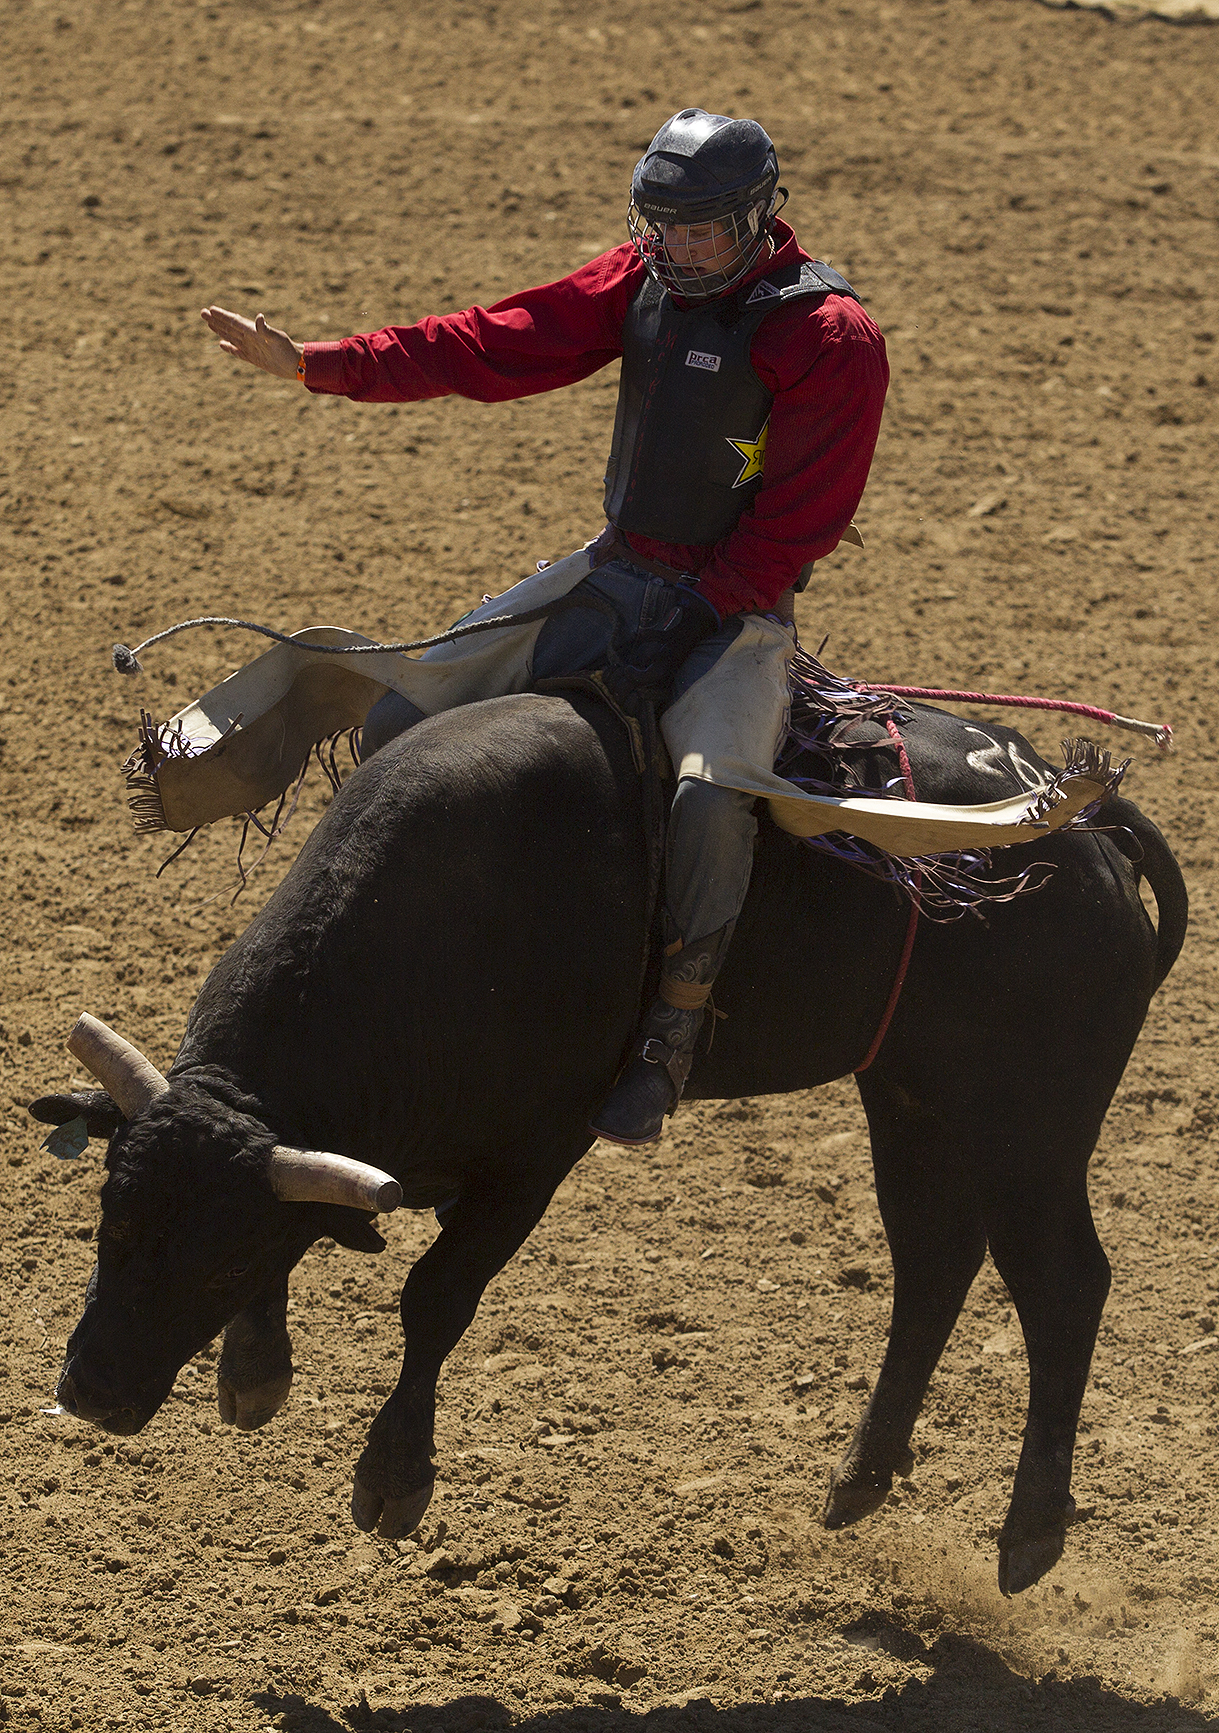 Yance McCuistion of Sugar City, Colo., rides a bull during Wednesday morning's performance of the 2016 National High School Finals Rodeo at Morningside Park.